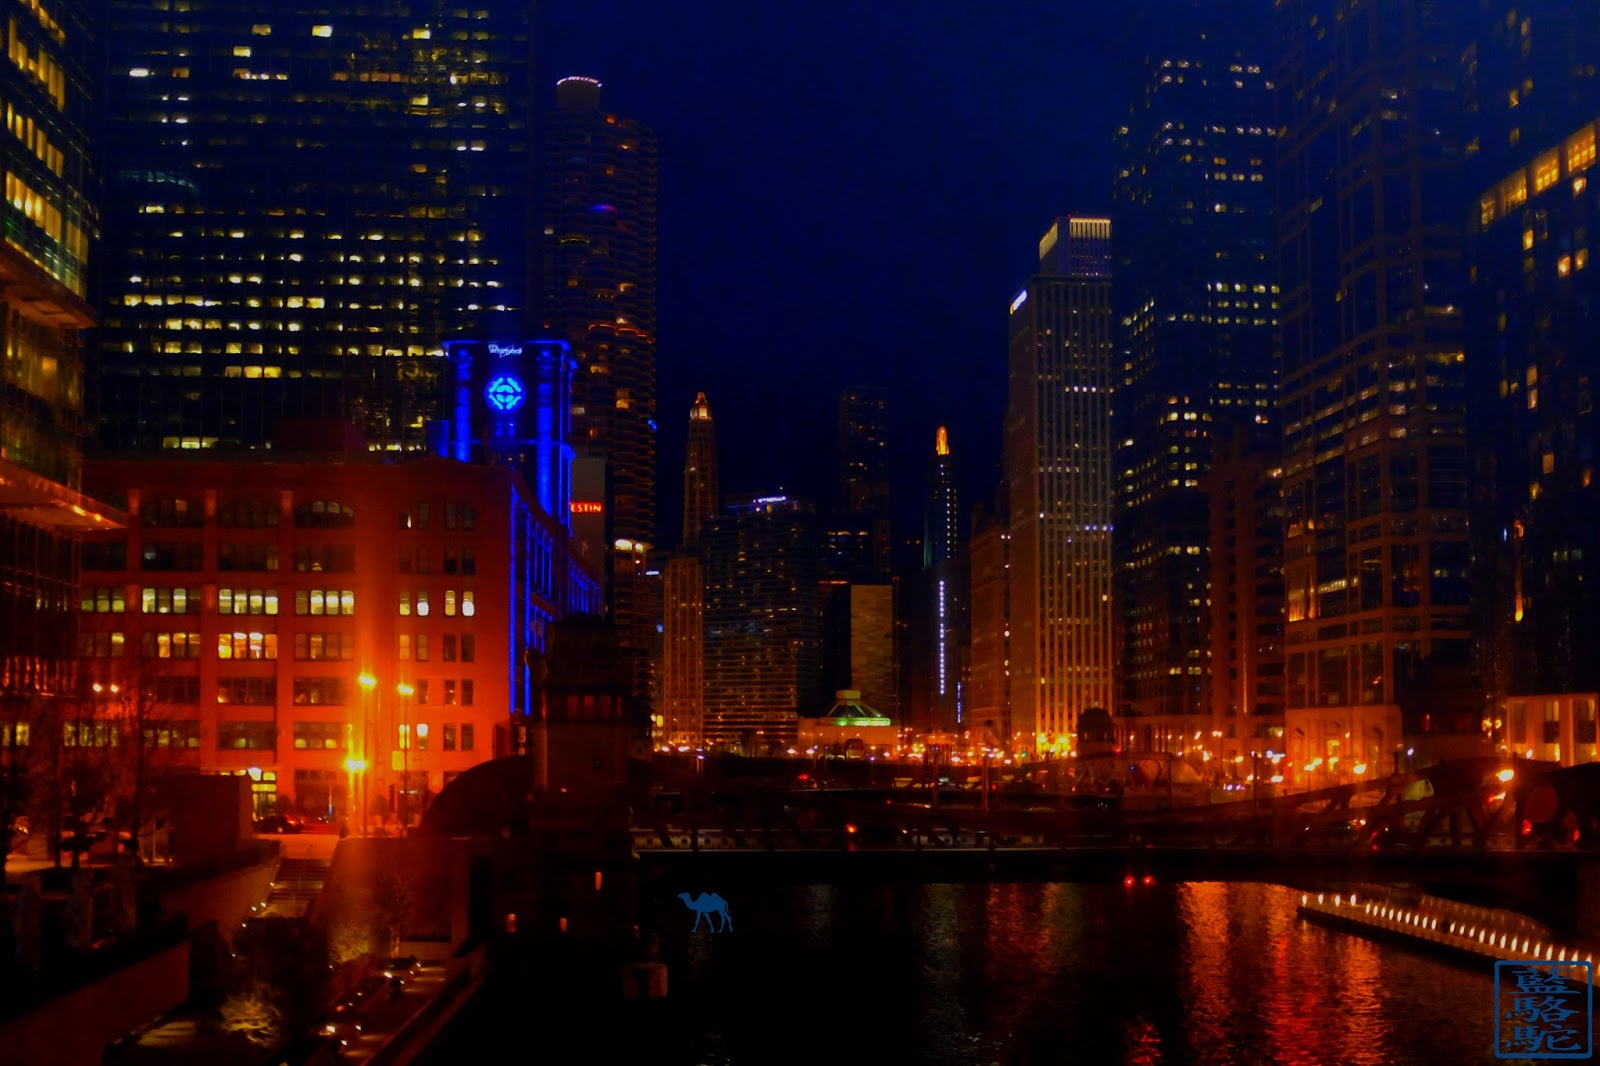 Le Chameau Bleu - Chicago by night